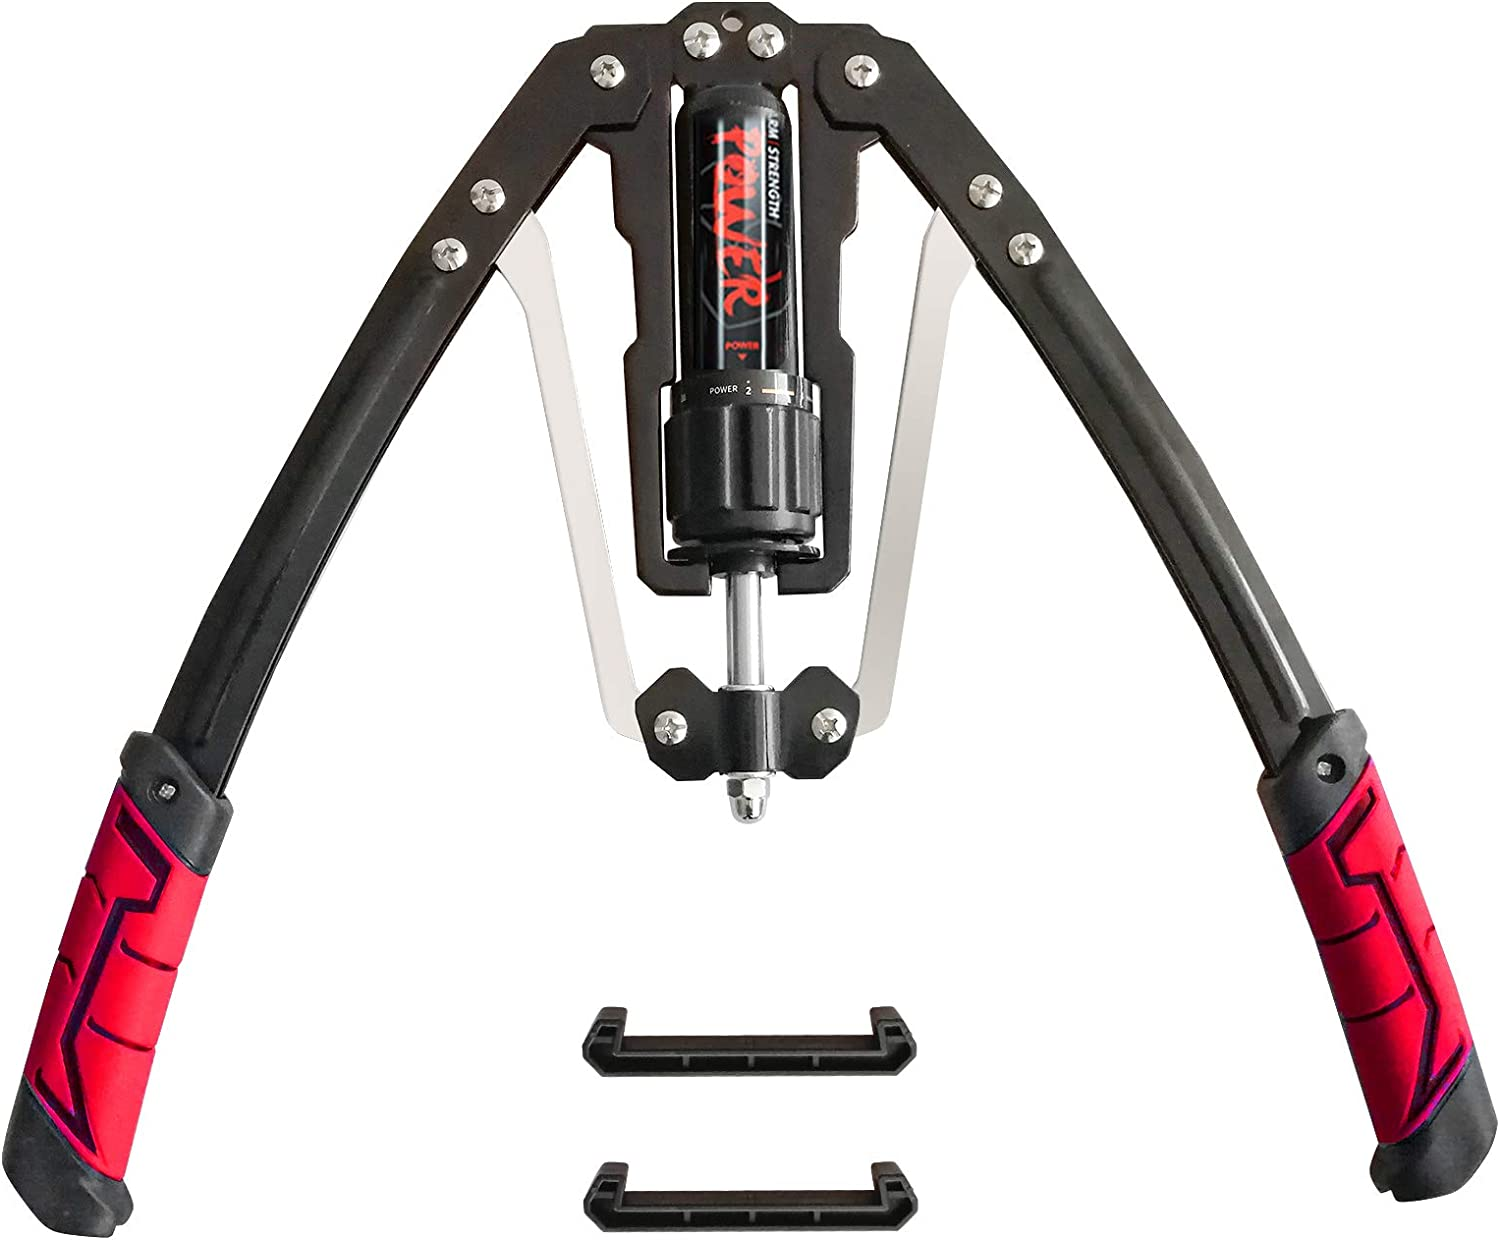 NAIZEA Arm Exerciser - Adjustable Power Home High material Hydraulic Brand Cheap Sale Venue Twister